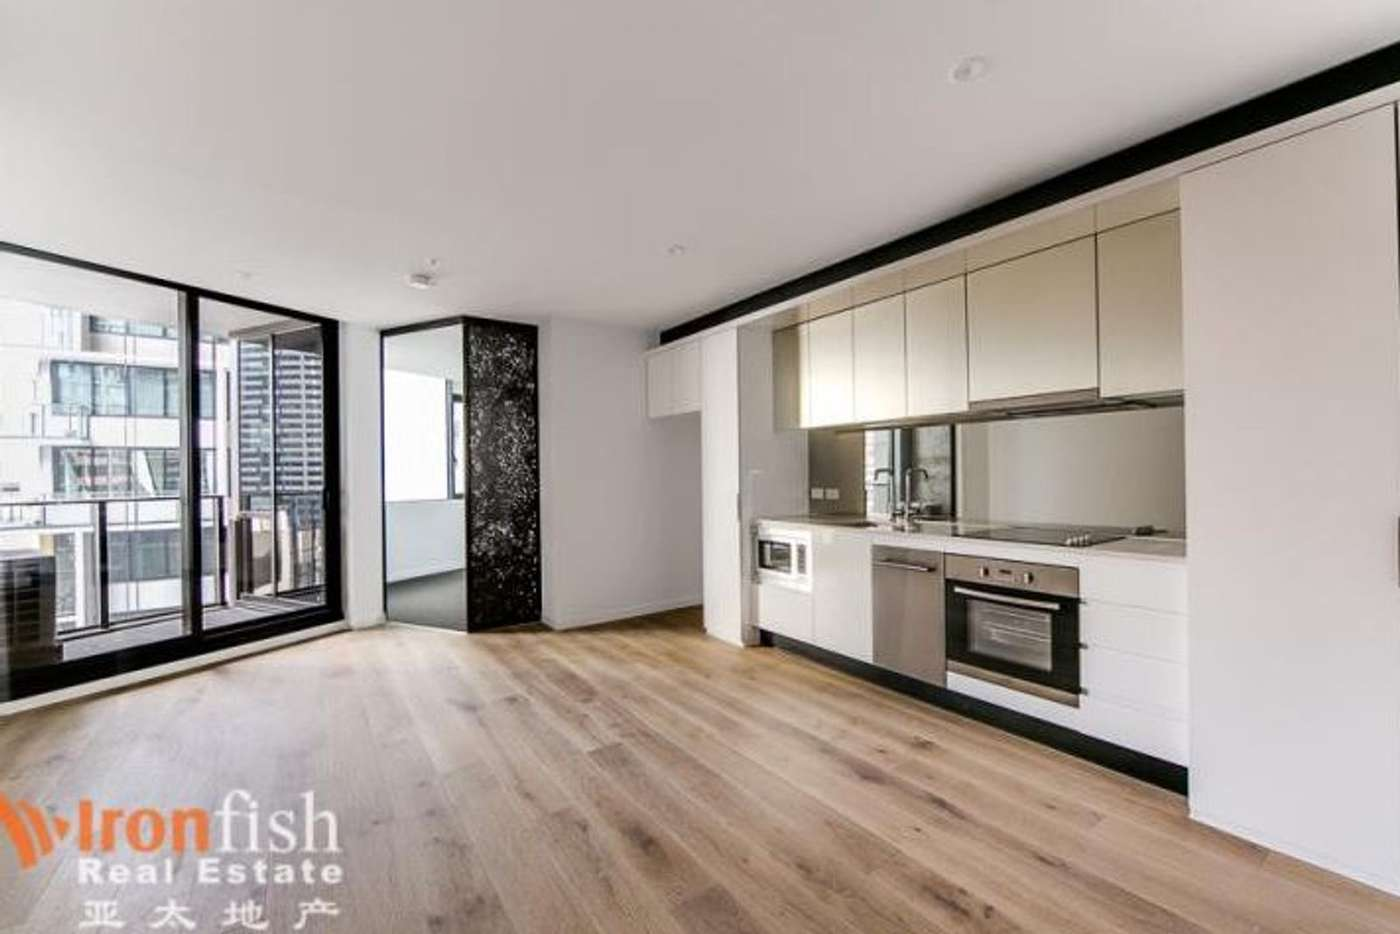 Main view of Homely apartment listing, 3613/33 Rose Lane, Melbourne VIC 3000